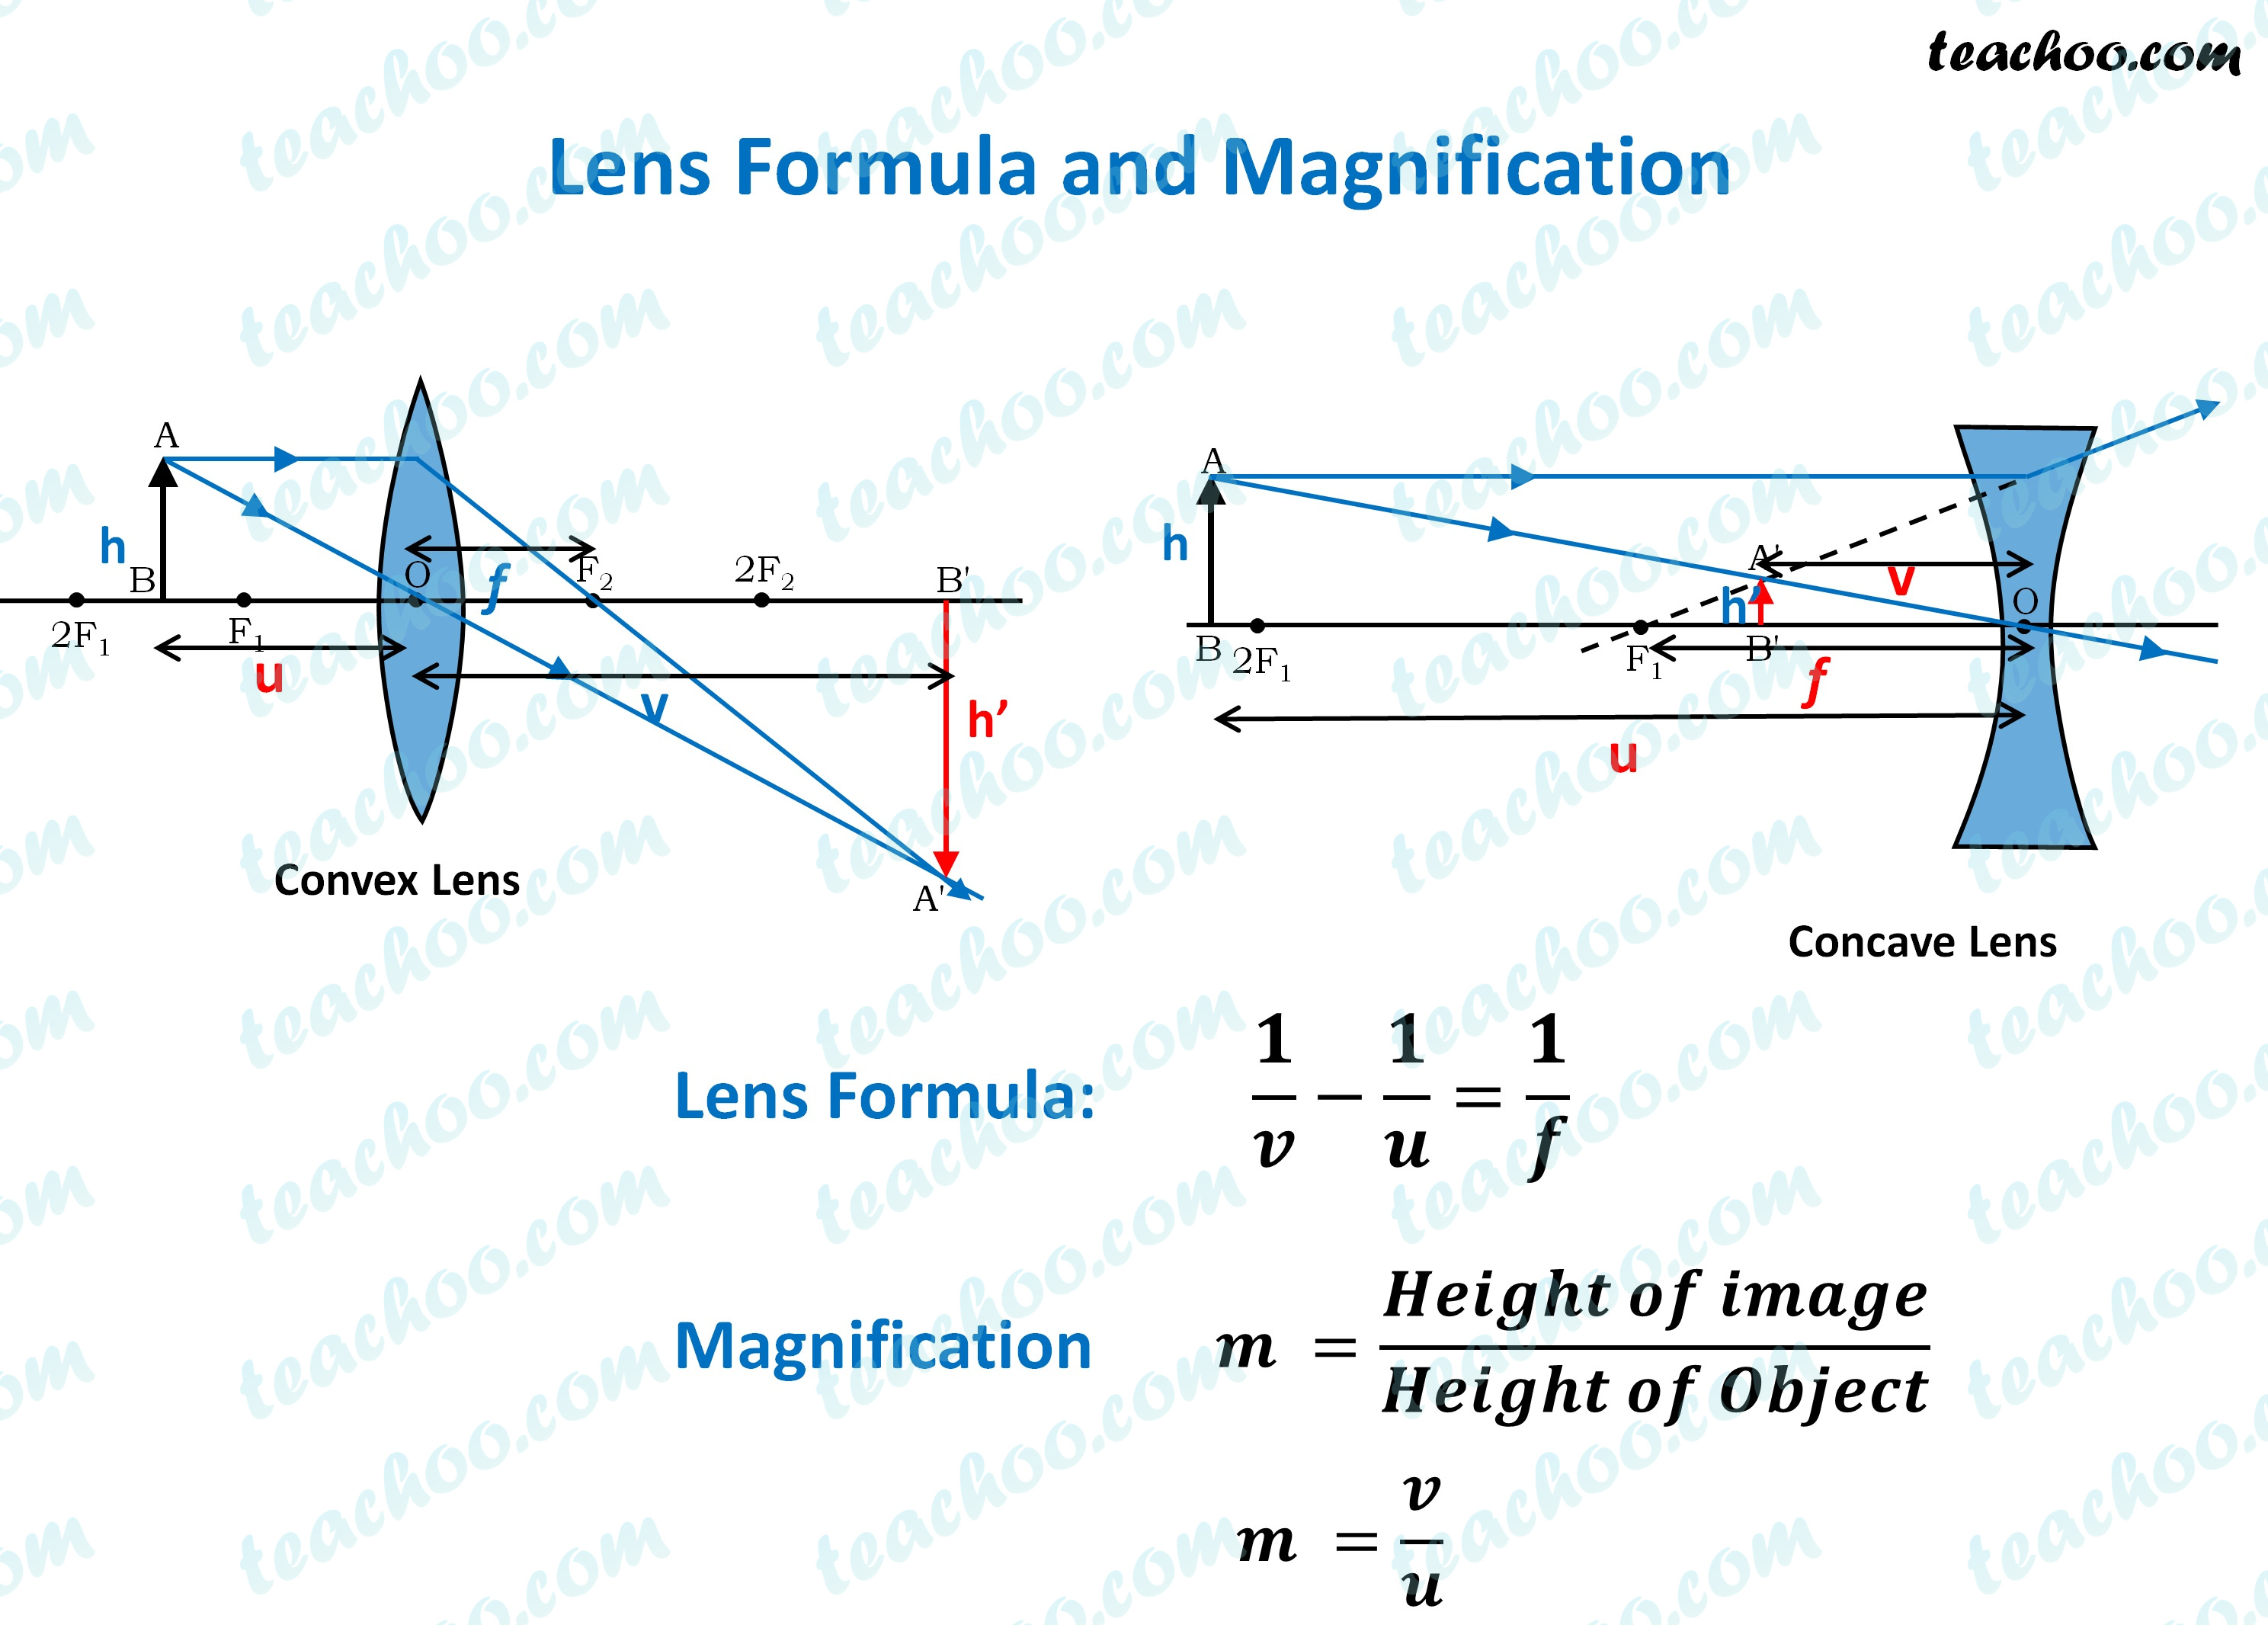 lens-formula-and-magnification---teachoo.jpg